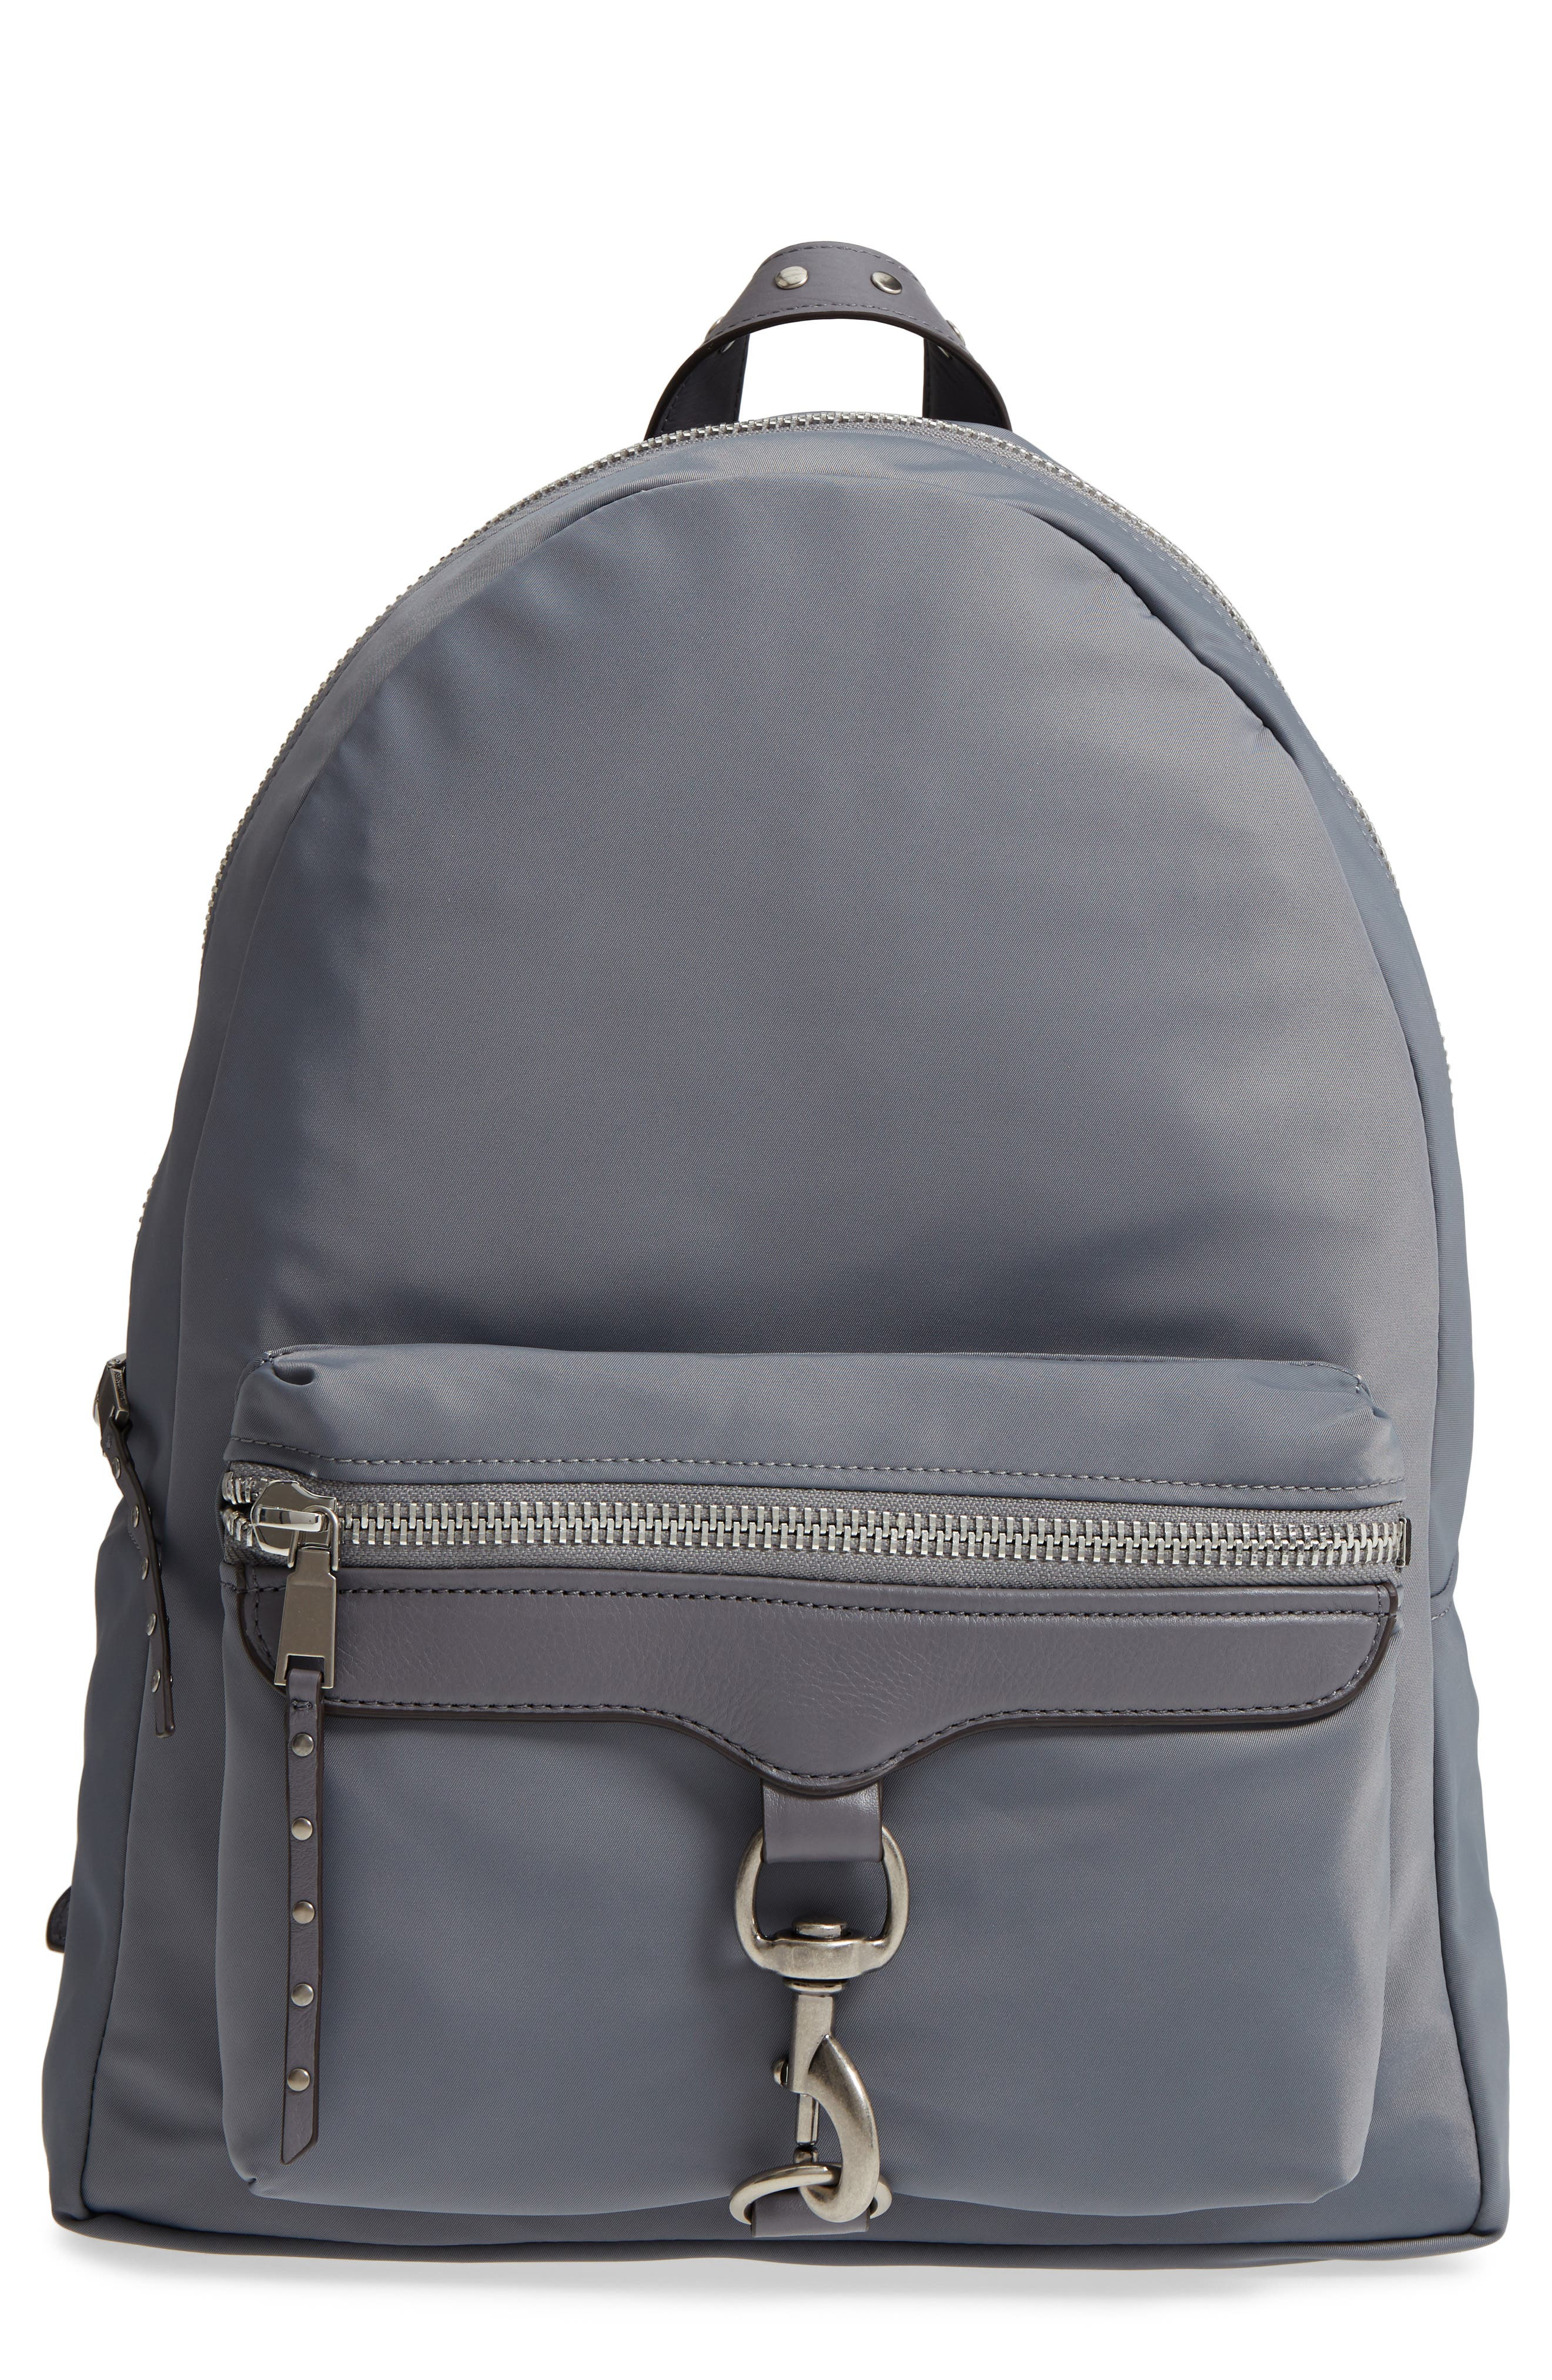 Always On MAB Backpack,                             Main thumbnail 1, color,                             GREY